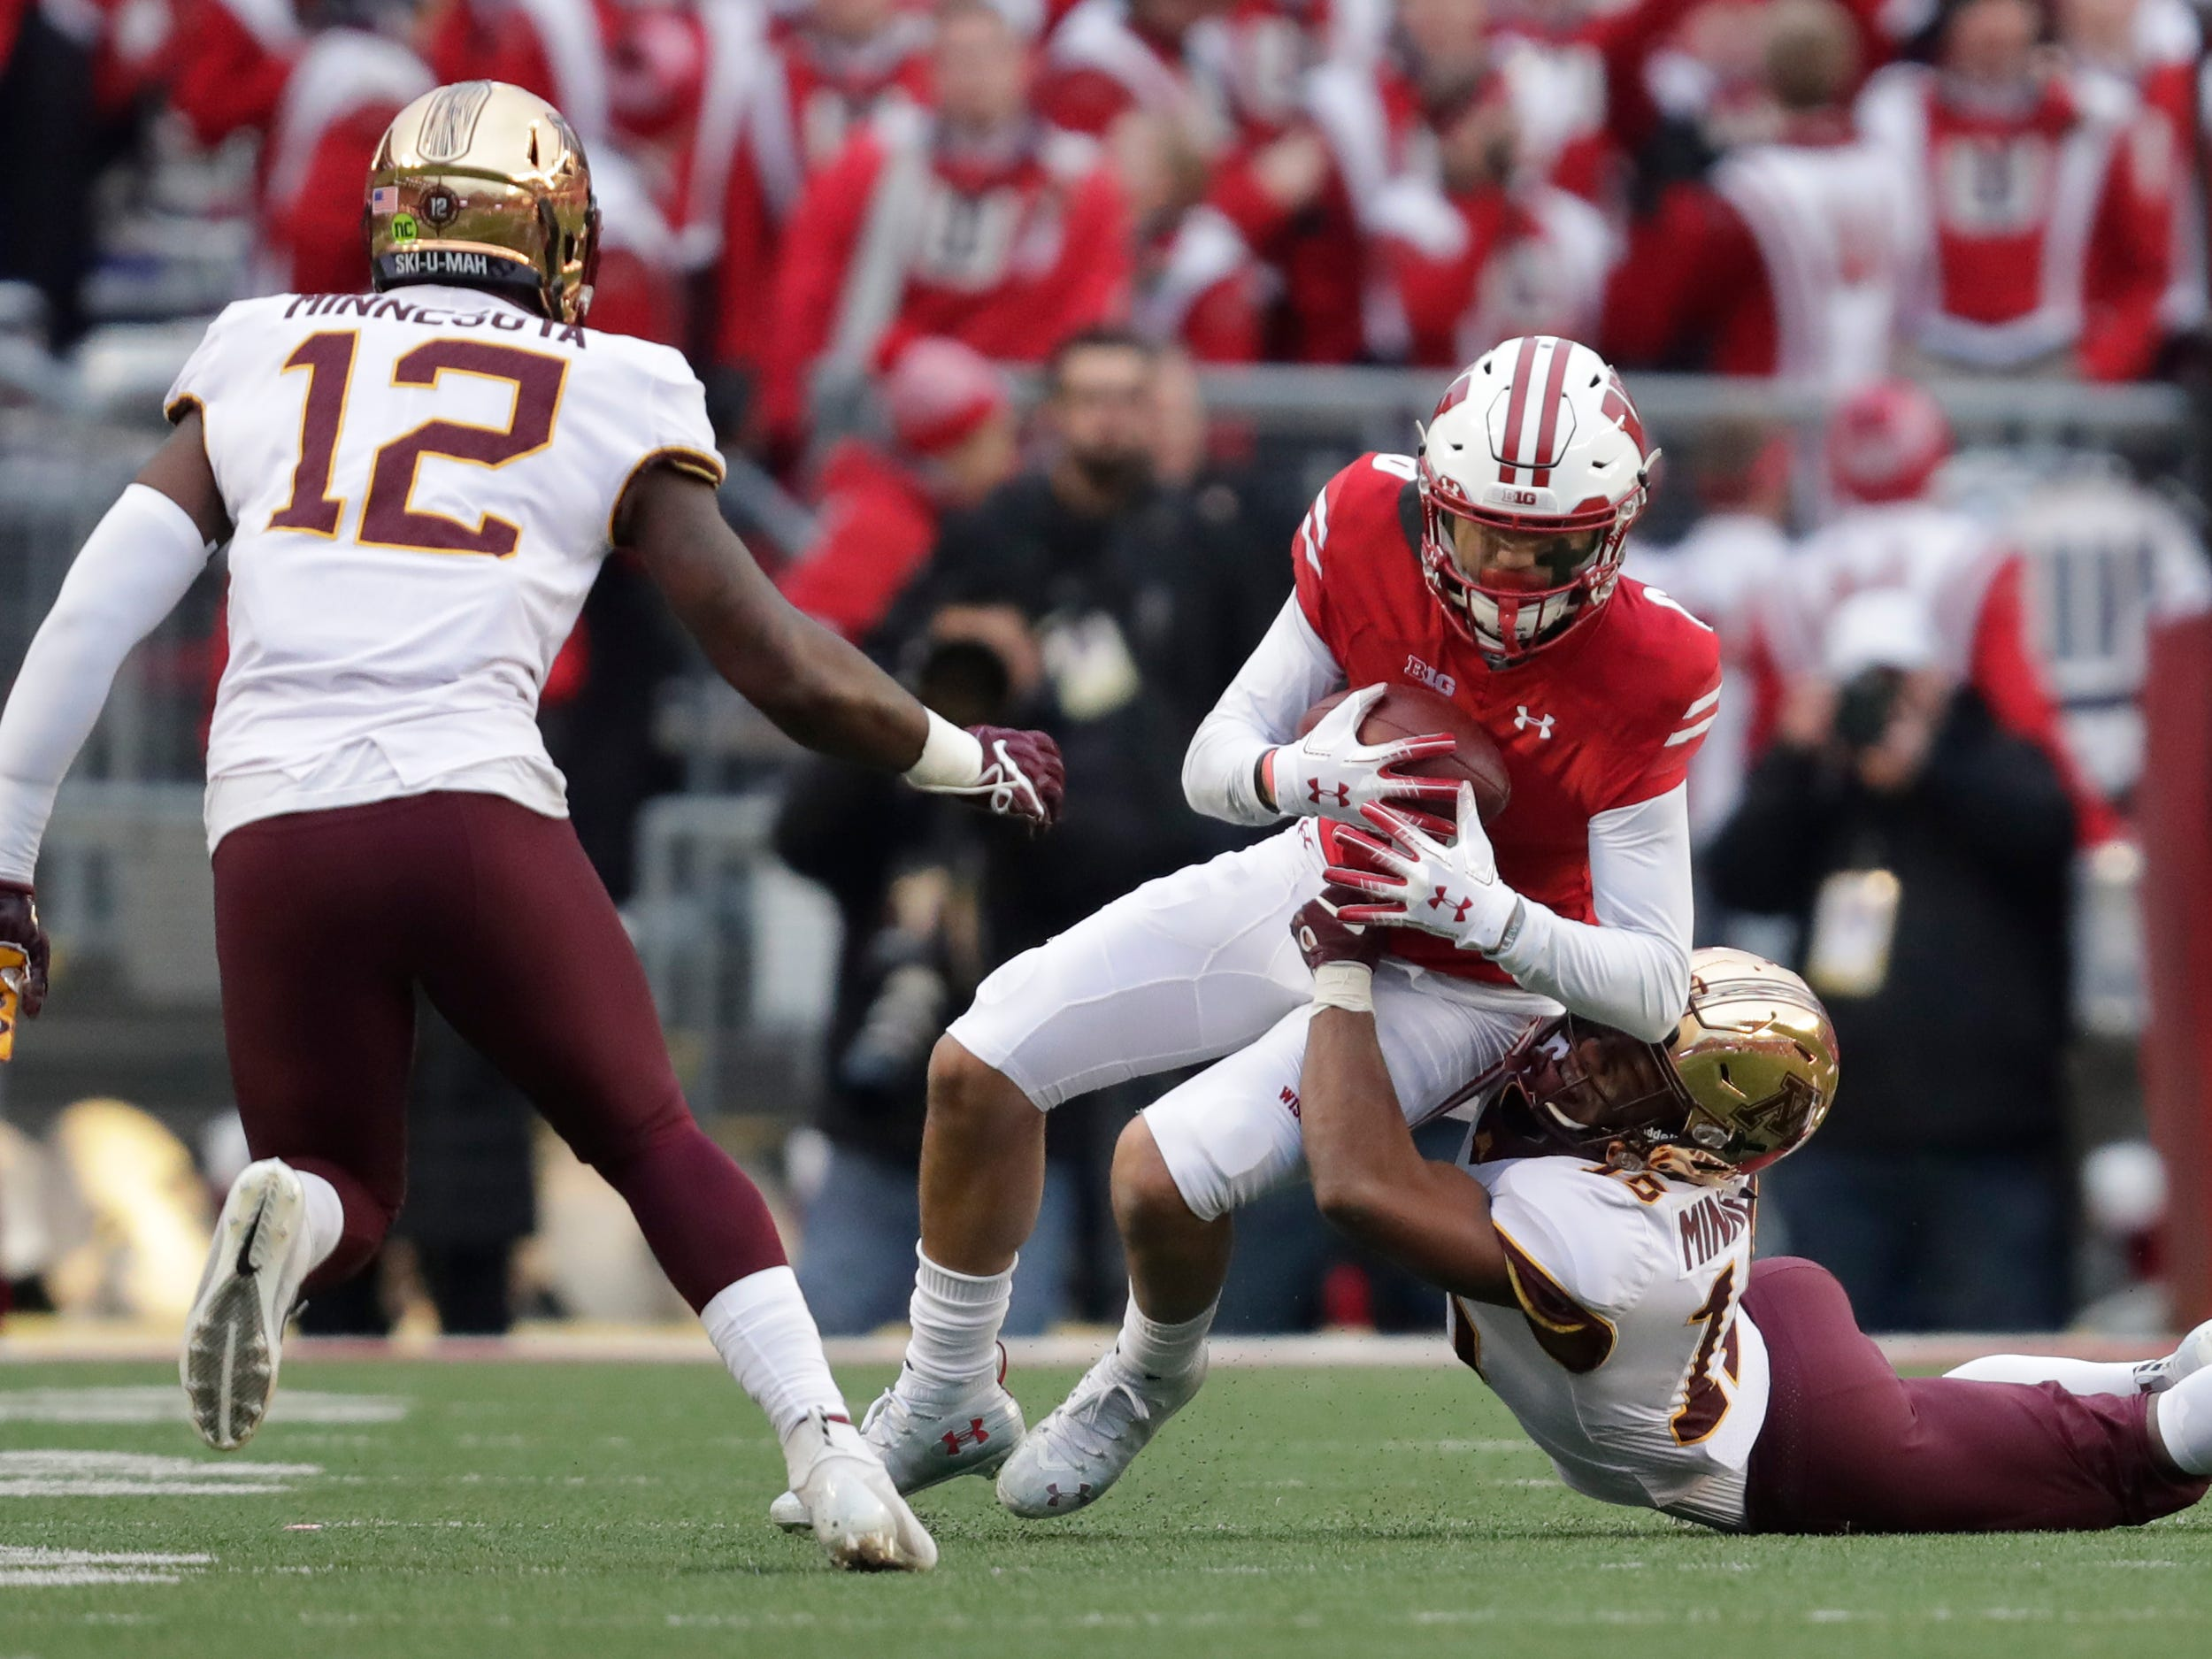 Wisconsin wide receiver Danny Davis  pulls down a reception as Minnesota defensive back Coney Durr tries to bring him down on Saturday.